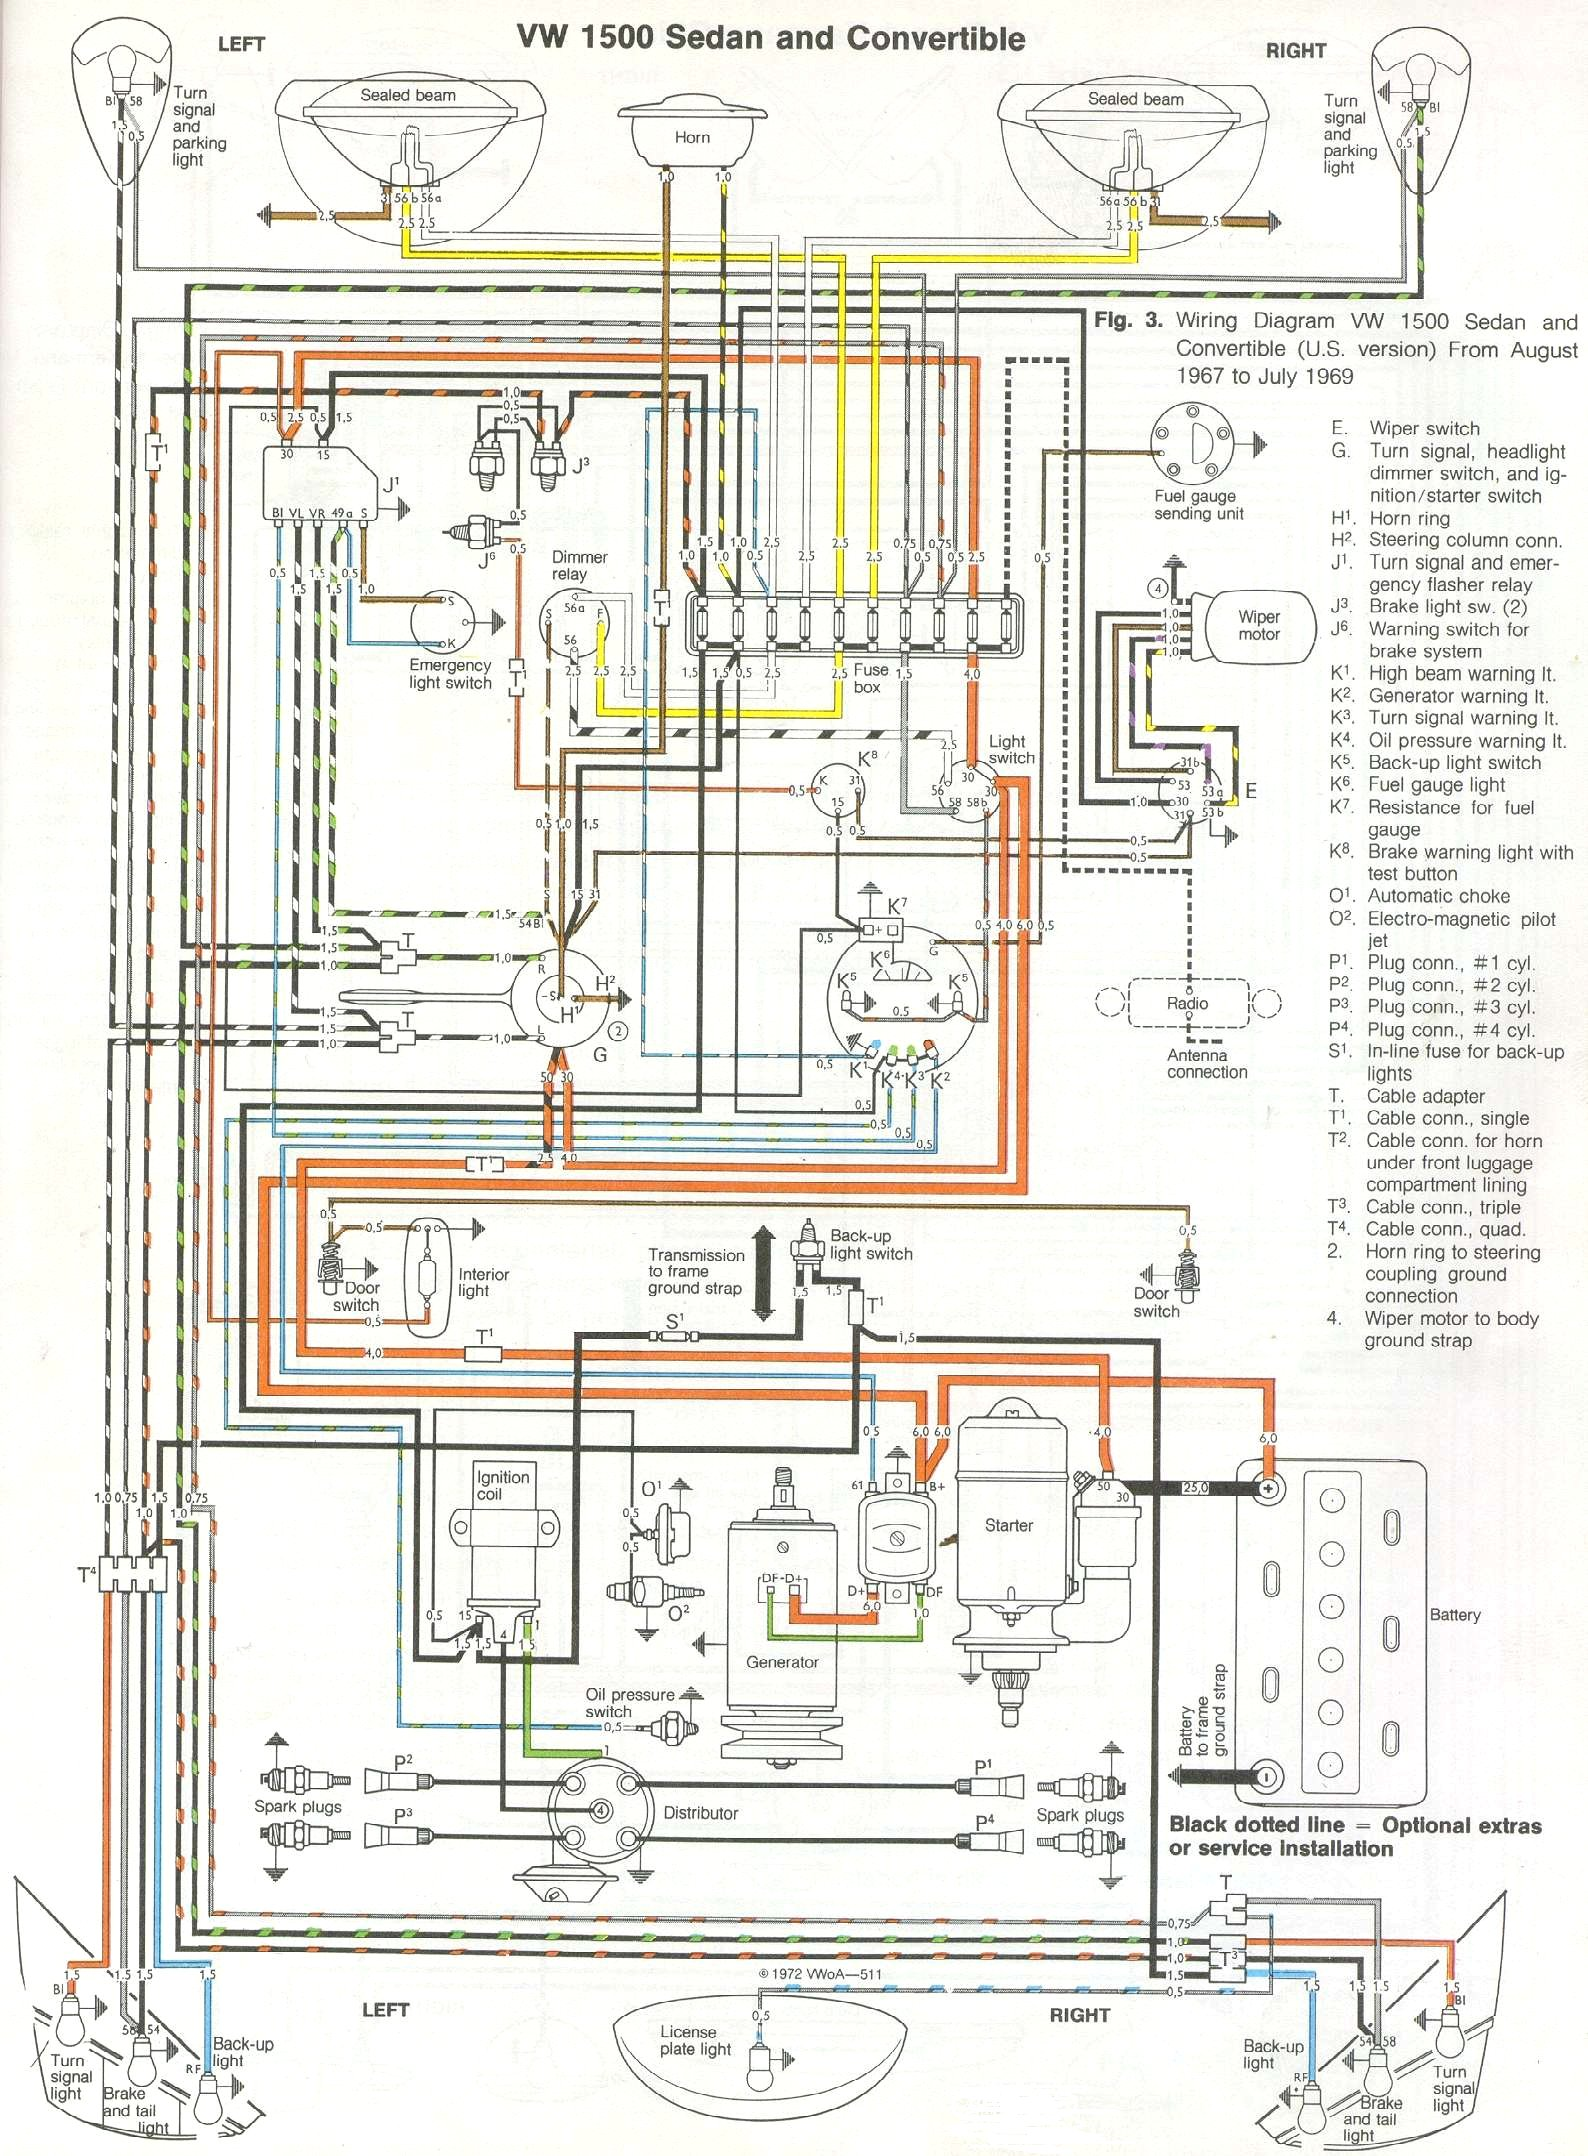 bug_6869 1969 71 beetle wiring diagram thegoldenbug com 1971 vw beetle wiring diagram at panicattacktreatment.co